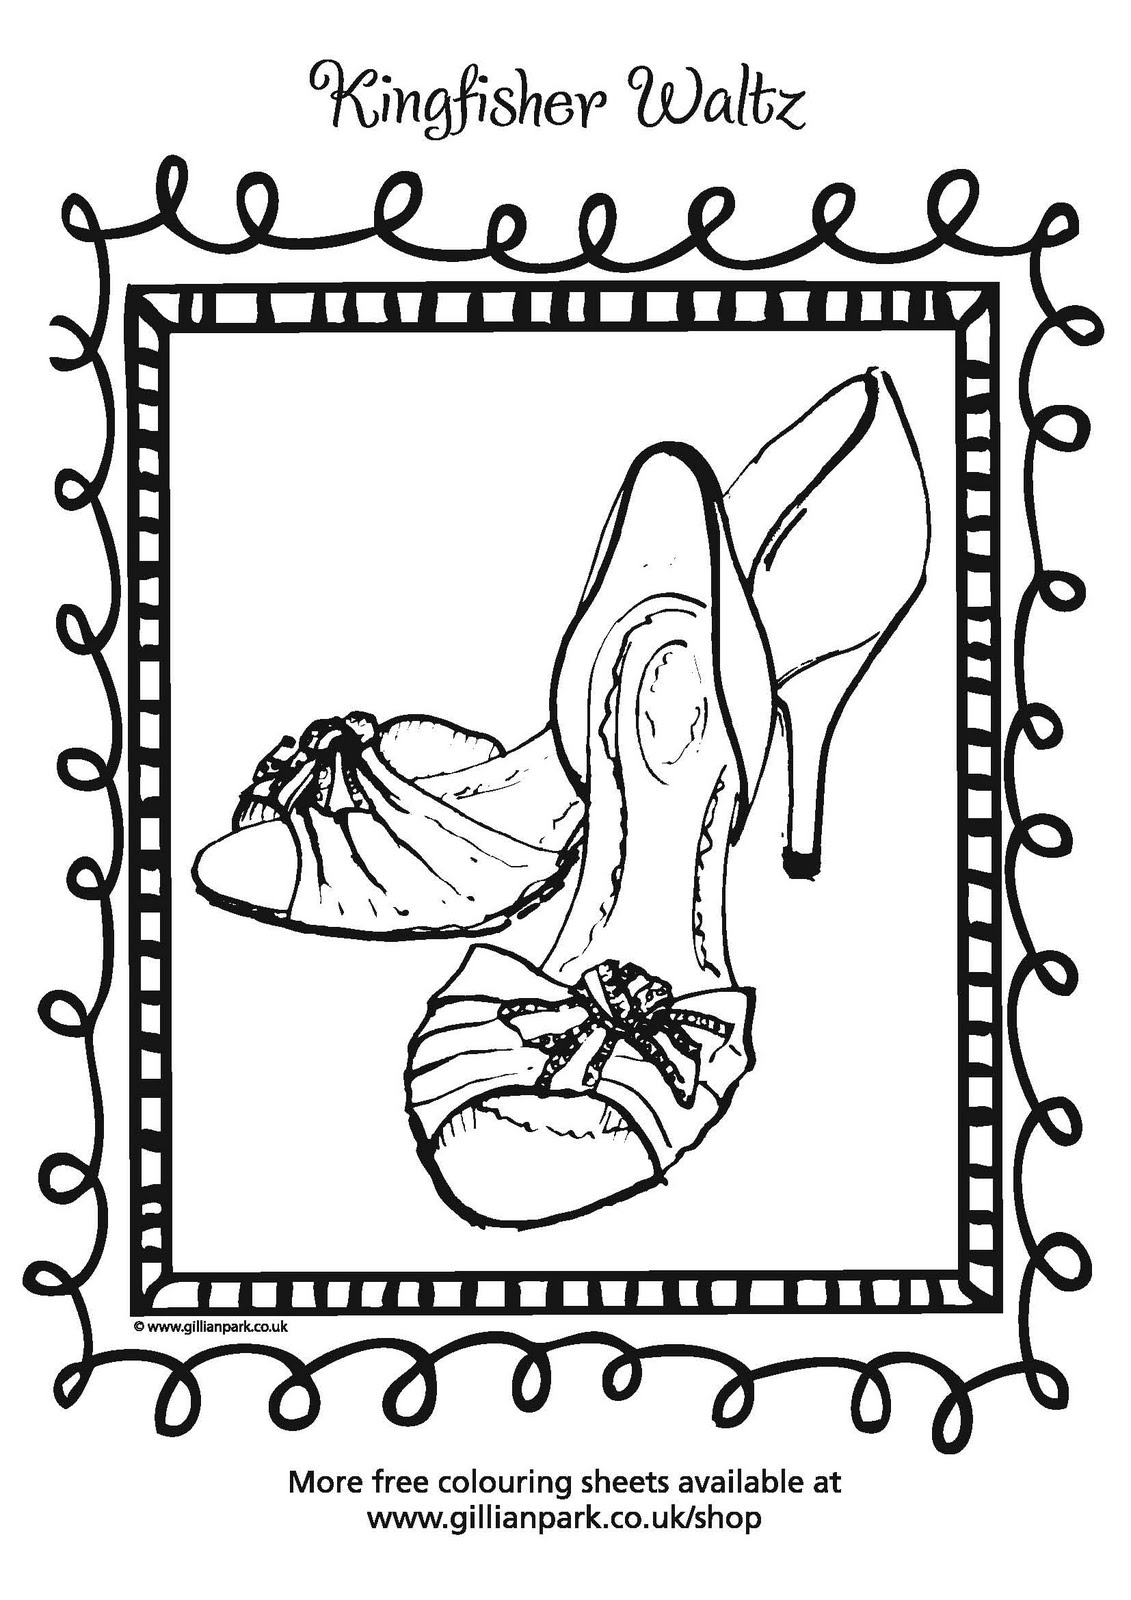 Co coloring book shop - Co Coloring Books Grow Up Free Colouring In Sheets For Your Mini Shoe Lovers